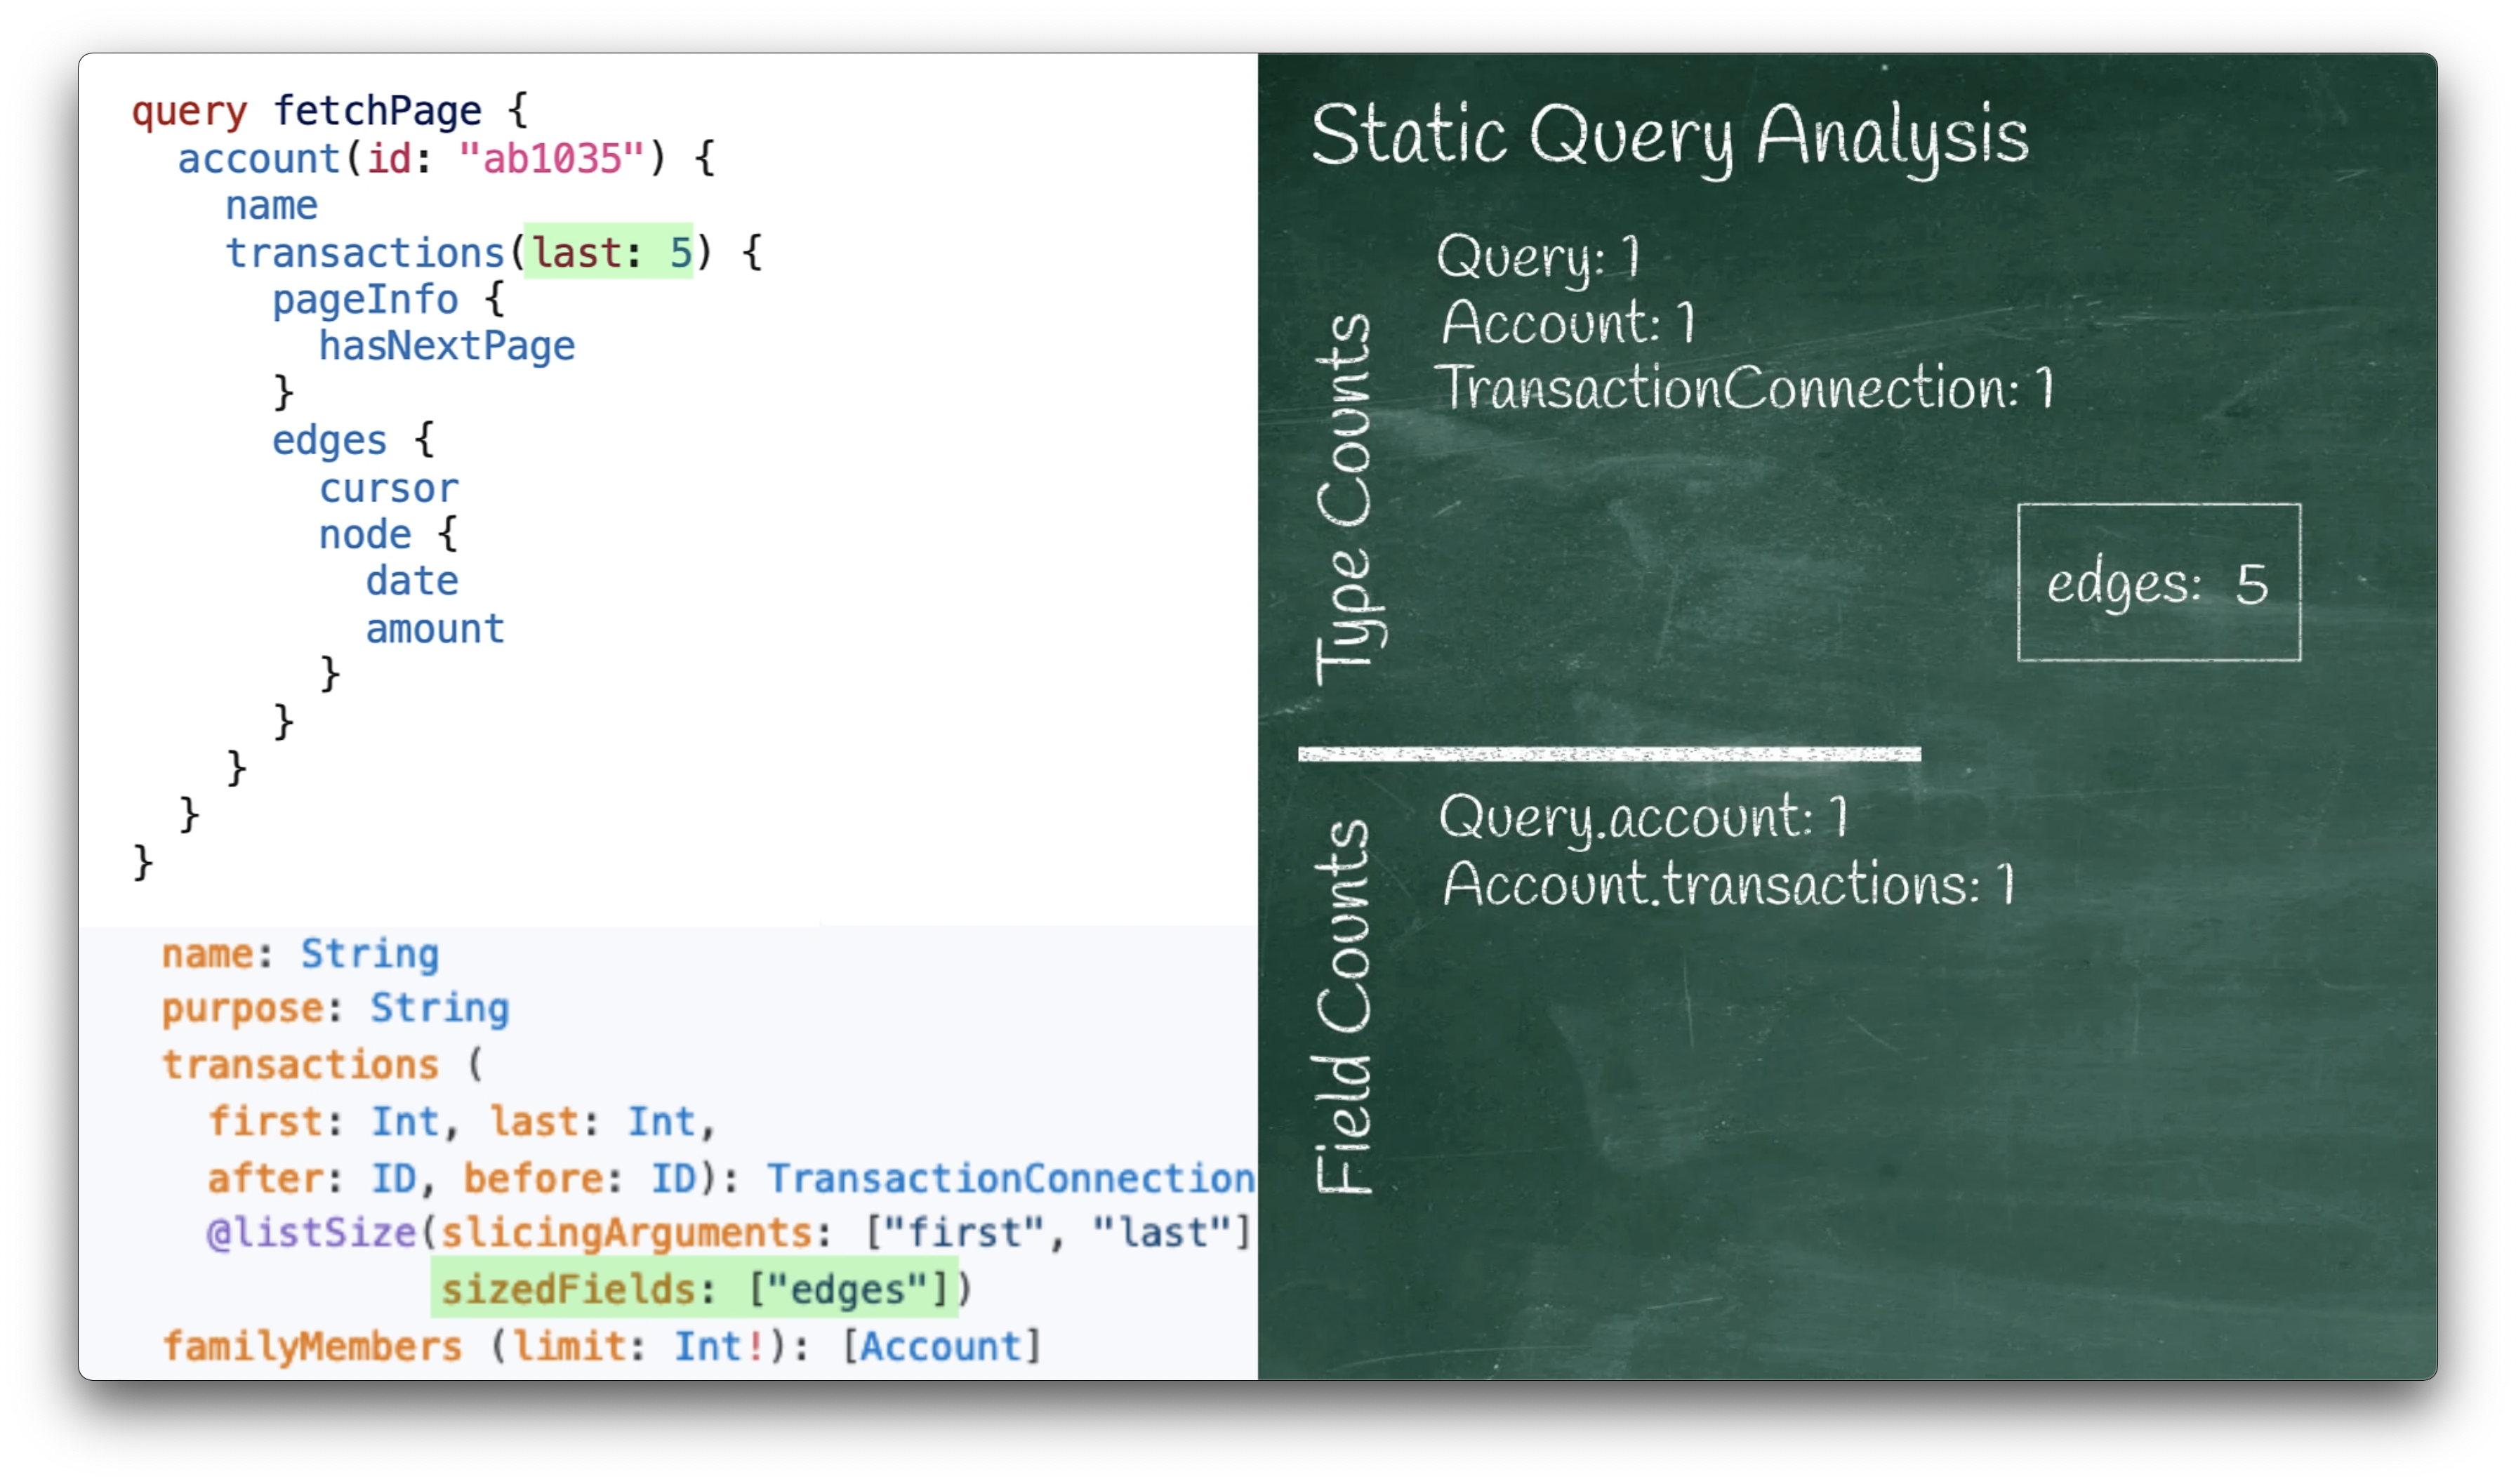 Static Query Analysis Timestep 4